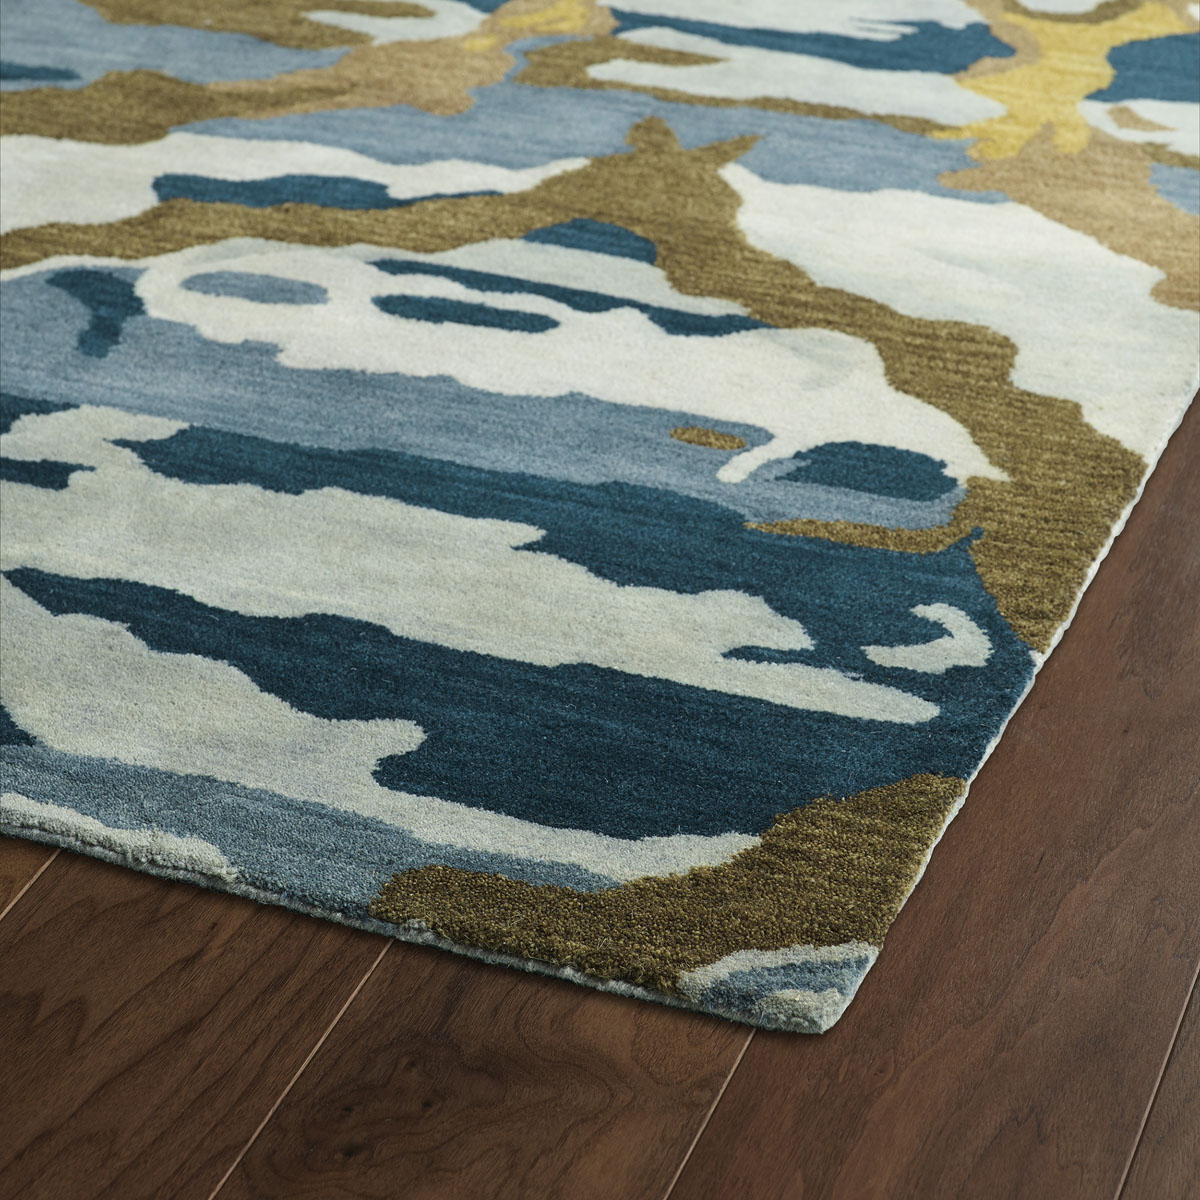 Kaleen Brushstrokes Blue Brs02 17 Area Rug Free Shipping